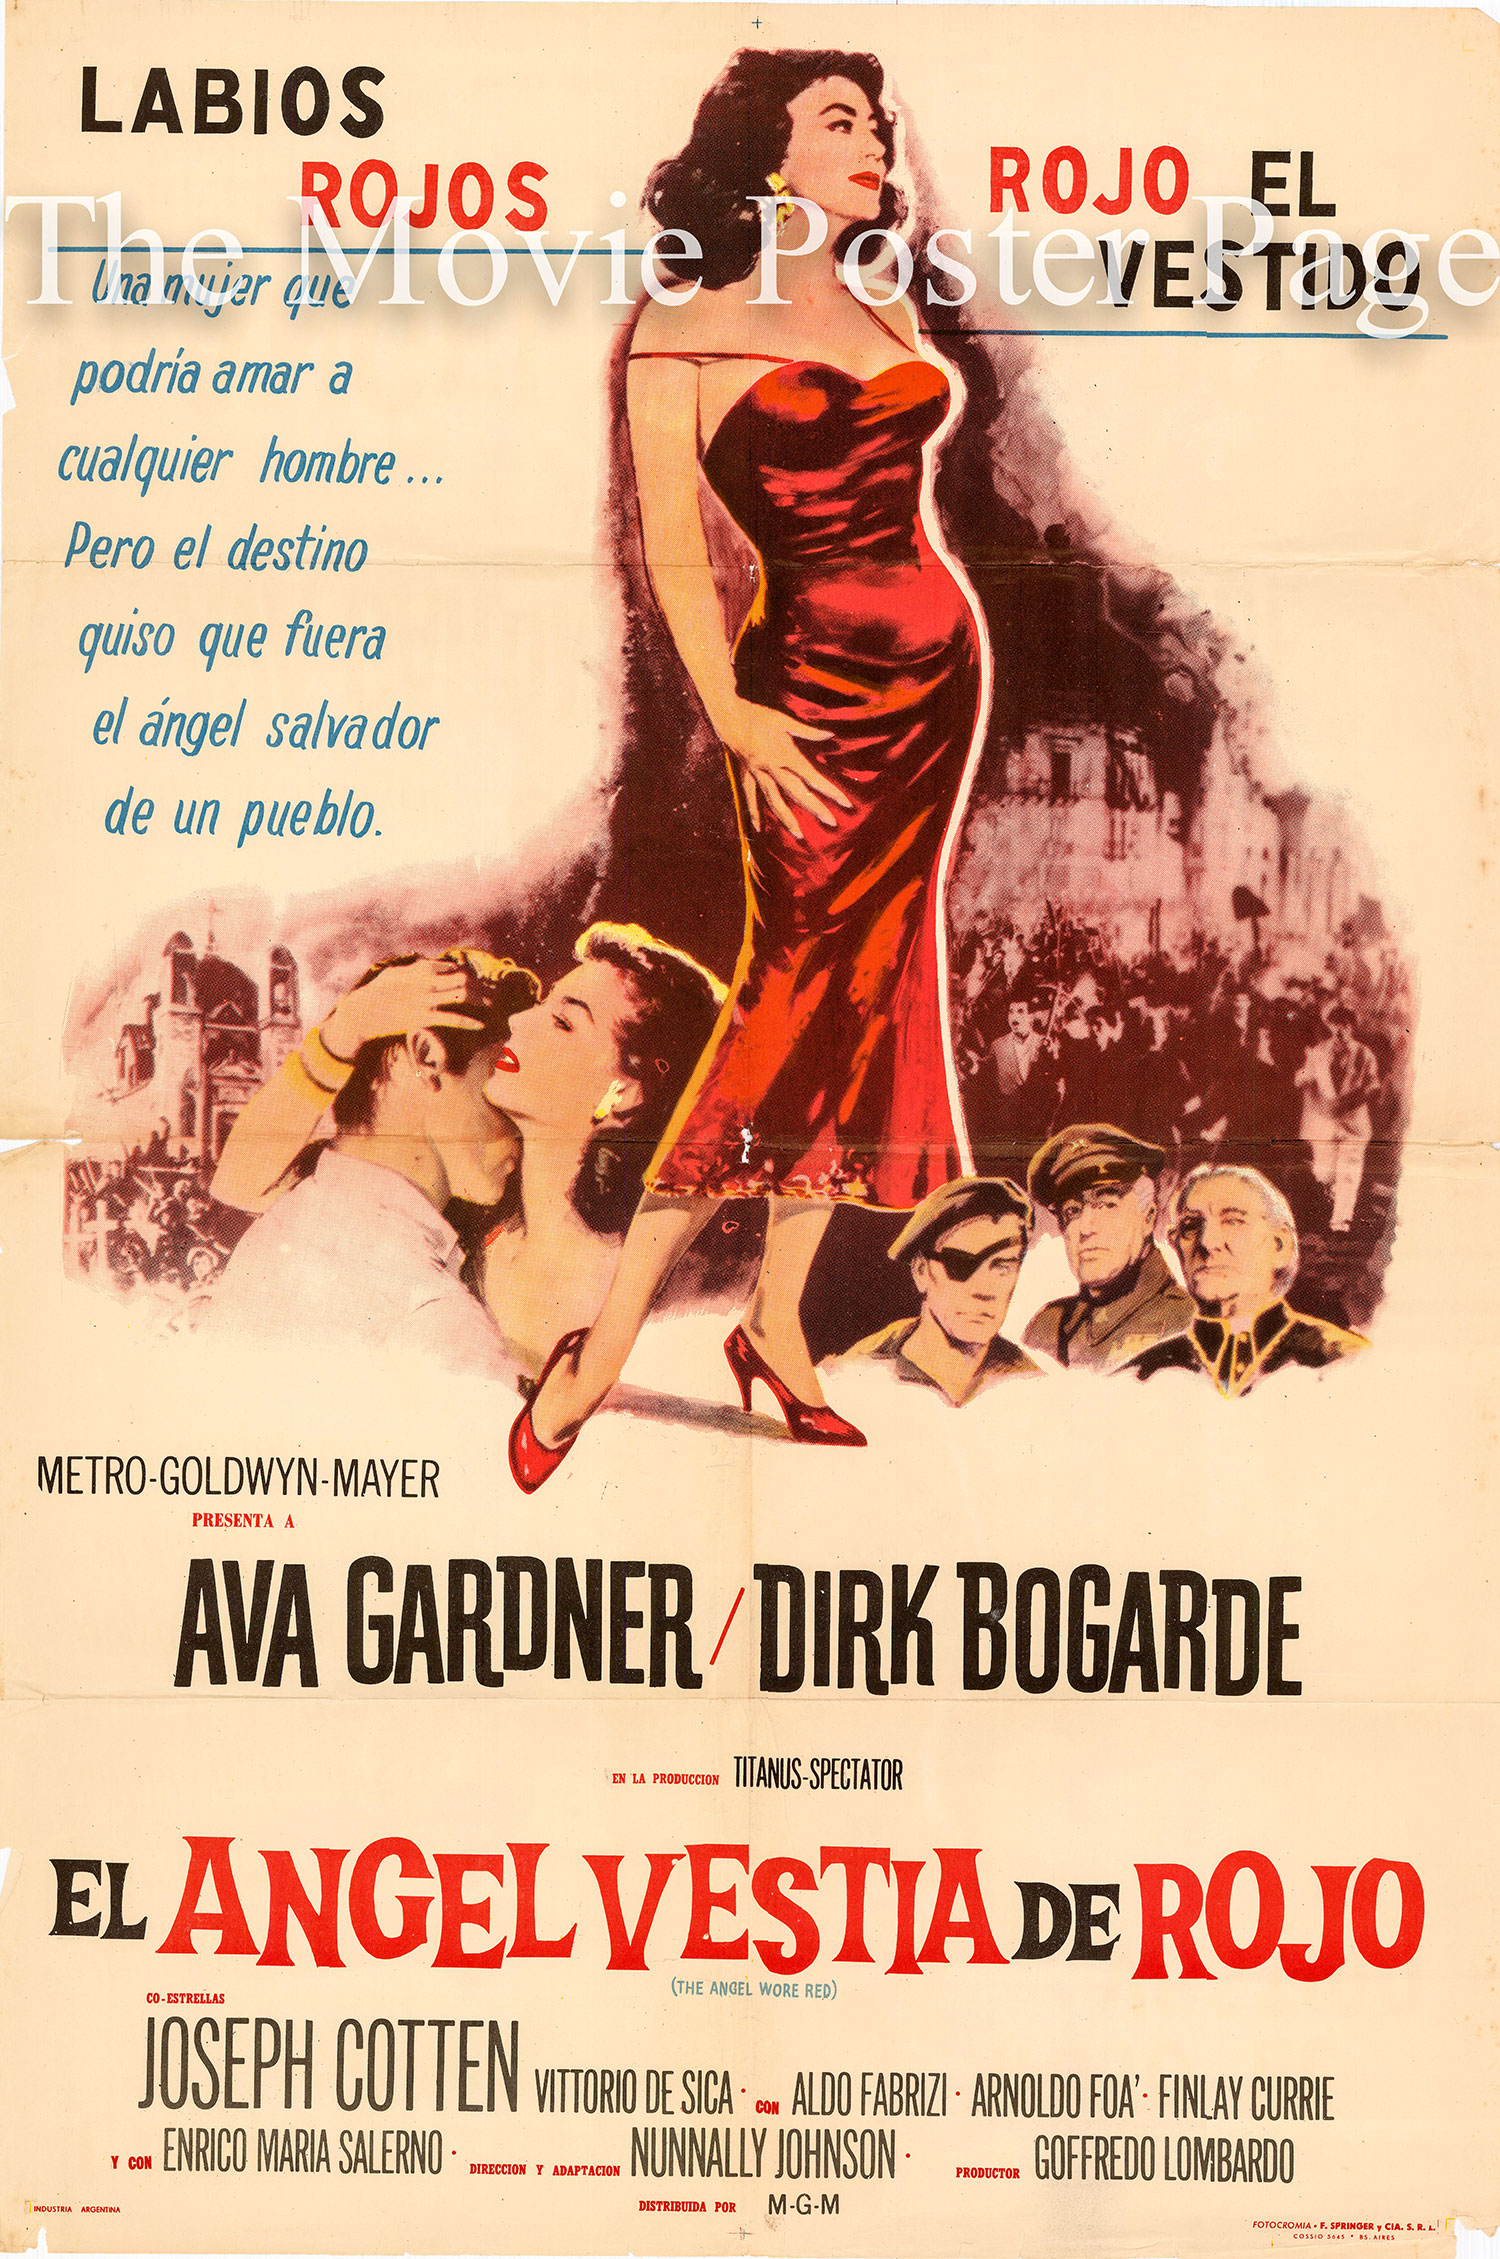 Pictured is an Argentine one-sheet poster for the 1960 Nunnally Johnson film The Angel Wore Red starring Ava Gardner.